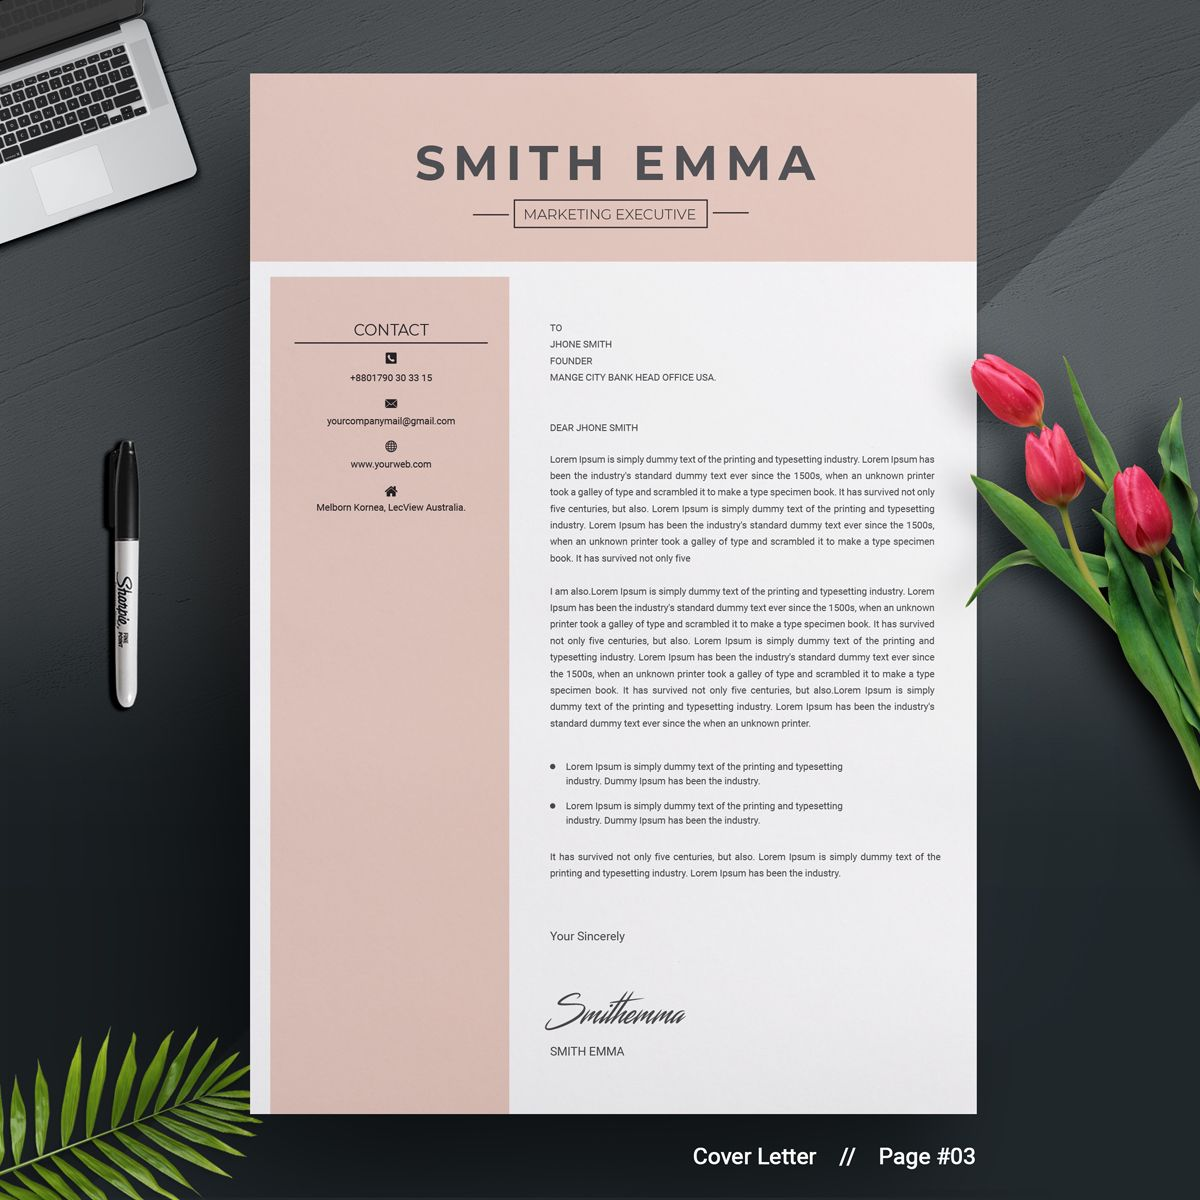 smith emma resume template 71441 (with images) personal hobbies and interests examples marketing specialist pdf 2019 templates word